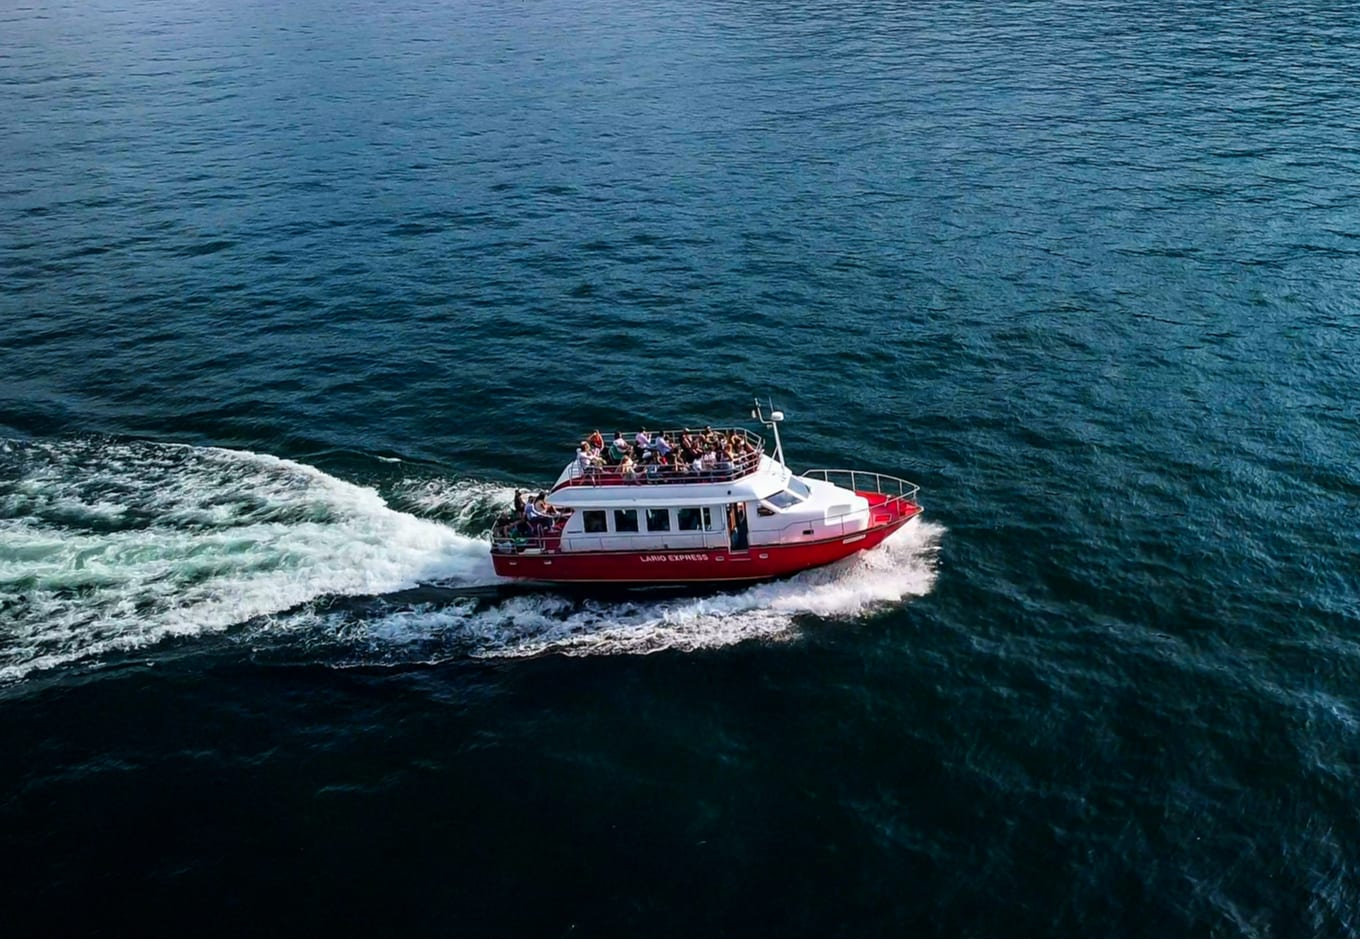 A white and red ferry transporting people.